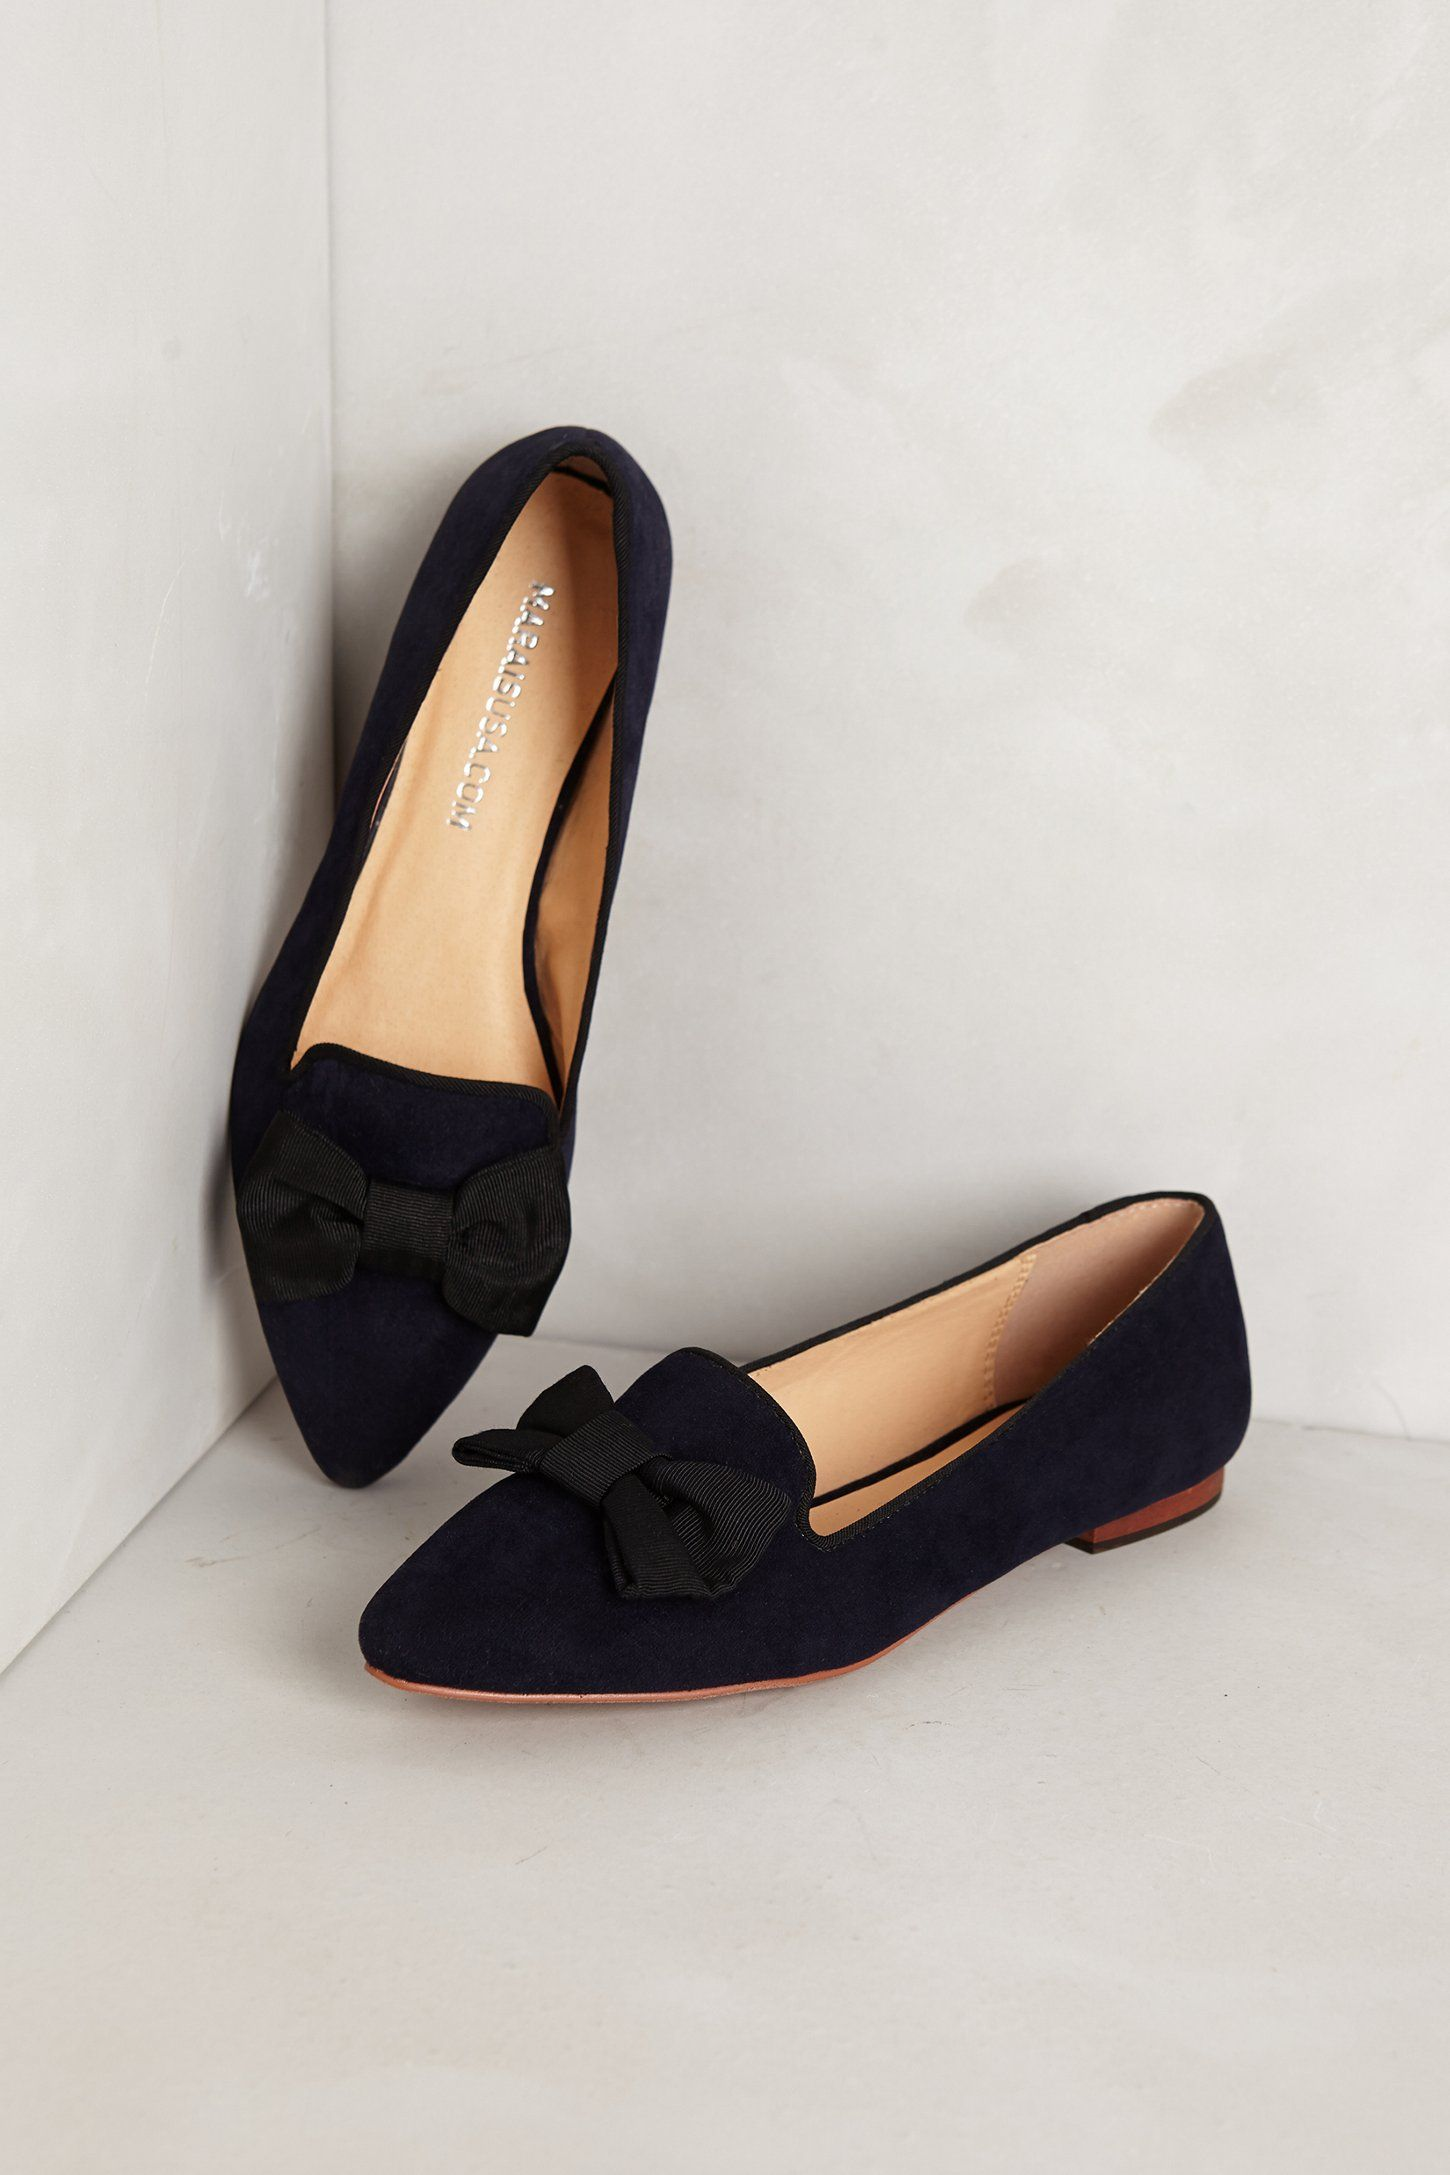 Bowtie Loafers - Anthropologie.com  7004a9eb2